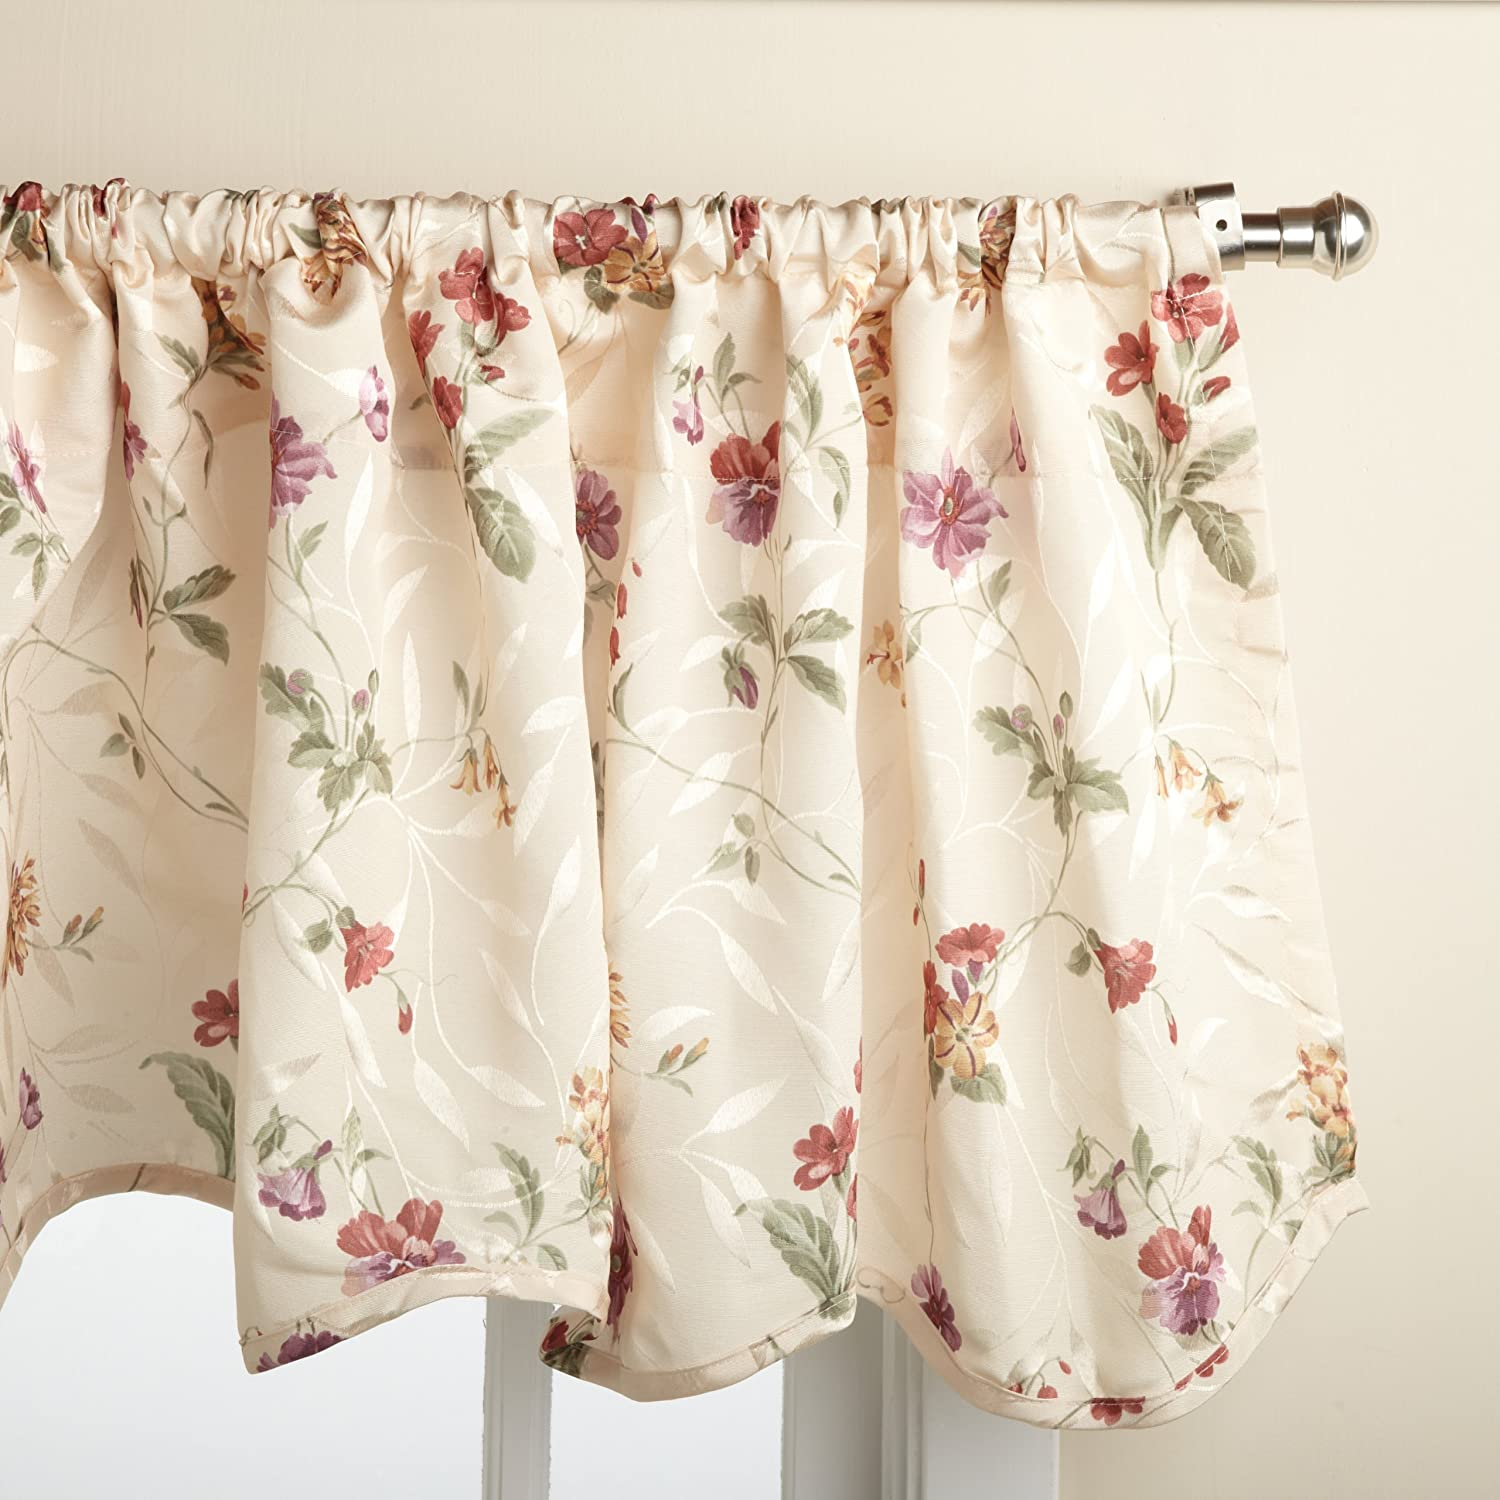 Amazon.com: Lorraine Home Fashions Whitfield Floral 52-inch x 18 ...